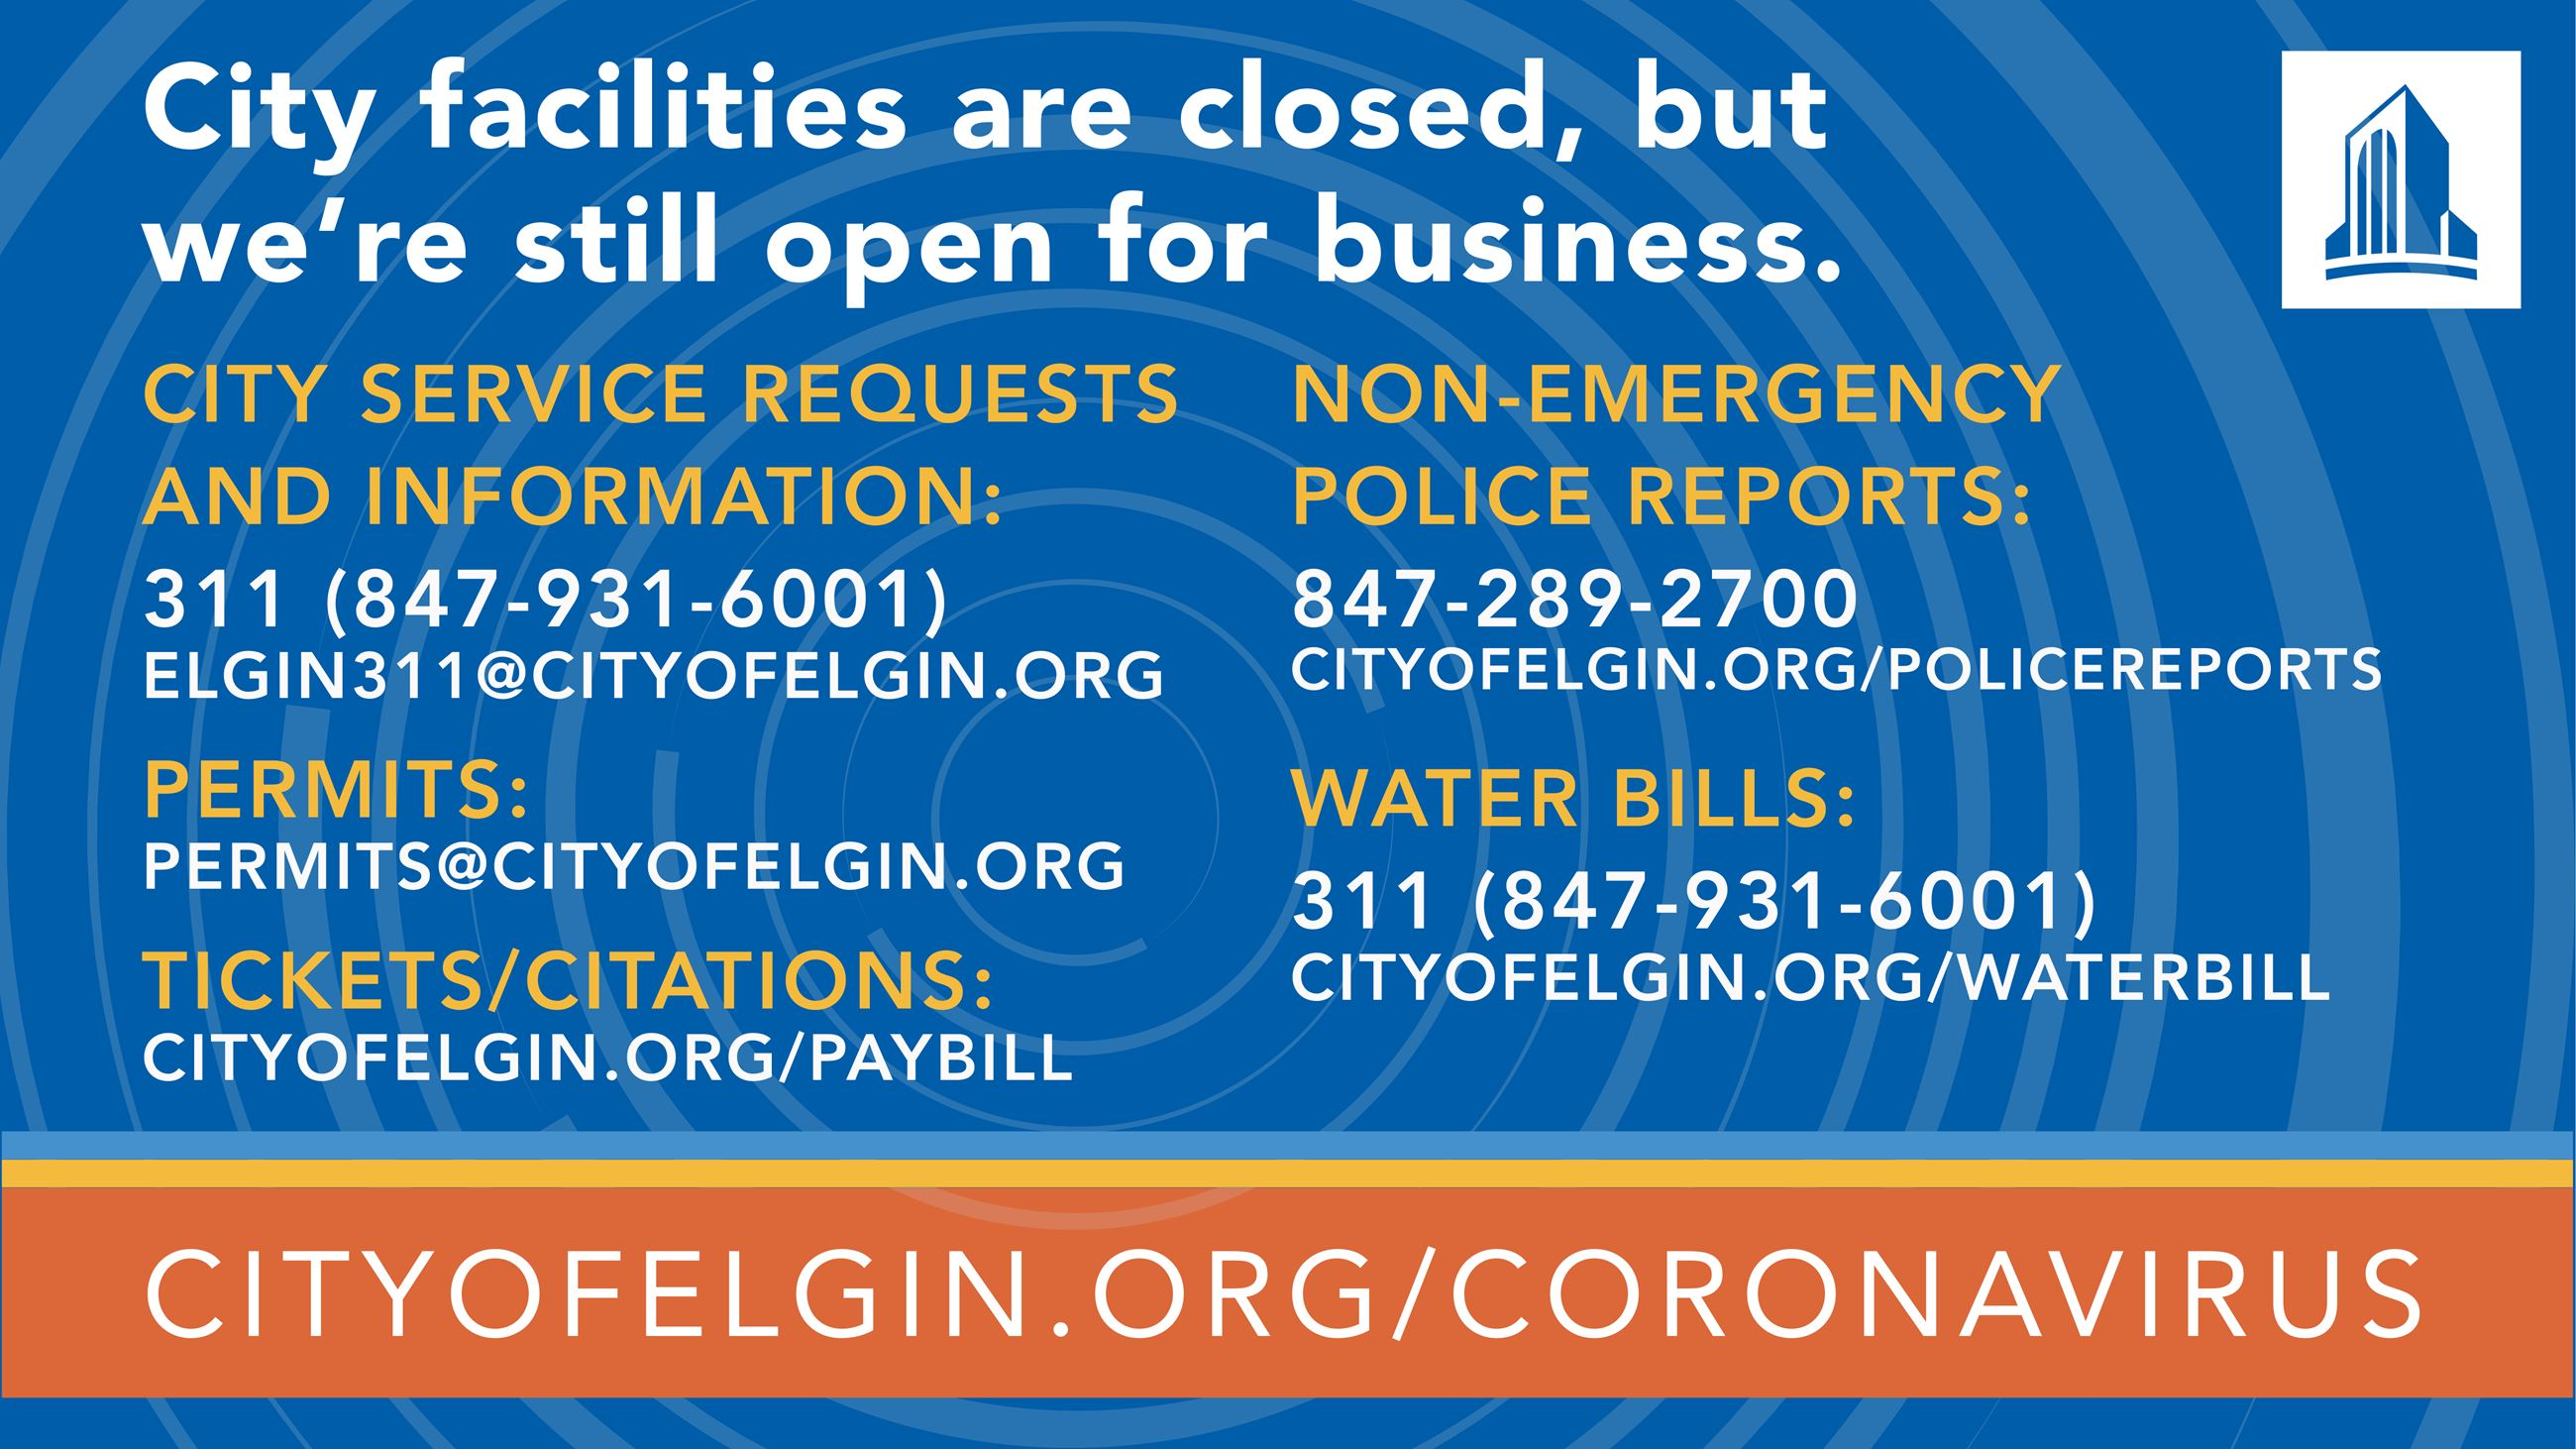 Closure Information - City is still in business - who to contact